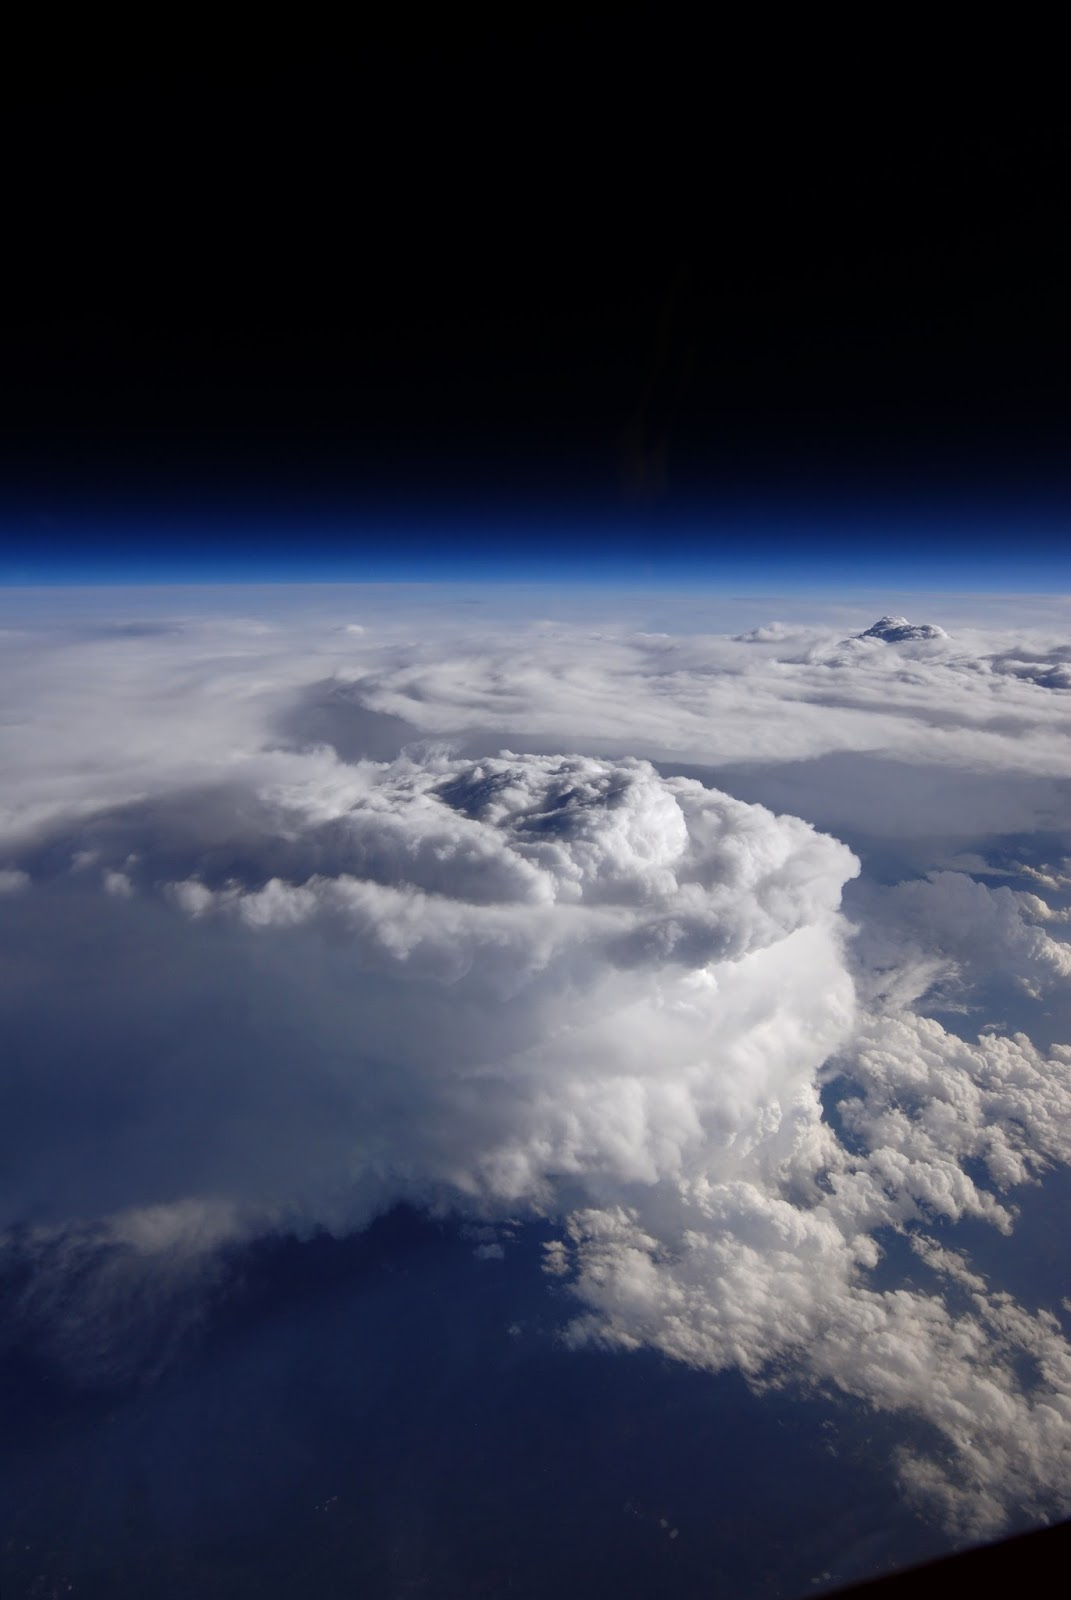 Storm Cell over the Southern Appalachian Mountains Storm Cell over the Southern Appalachian Mountains   This storm cell photo was taken from NASA's high-altitude ER-2 aircraft on May 23, 2014, during a study aimed at gaining a better understanding of precipitation over mountainous terrain. The Integrated Precipitation and Hydrology Experiment, or IPHEx, field campaign is part of the ground validation effort for the Global Precipitation Measurement (GPM) mission, an international satellite mission led by NASA and the Japan Aerospace Exploration Agency. GPM's Core Observatory launched Feb. 27, 2014, to provide next-generation observations of rain and snow worldwide every three hours. But to get accurate measurements from space, scientists have to understand what is happening on the ground.  For the six-week IPHEx field campaign over the southern Appalachian mountains, the NASA team and their partners at Duke University and NOAA's Hydrometeorological Test Bed set up ground stations with rain gauges and ground radar throughout western North Carolina. In addition to the ground sites, they also collected data sets from satellites and two aircraft.  The NASA ER-2 aircraft that deployed to Robins Air Force Base in Warner Robins, Georgia, was able to fly when rain was in the air. The ER-2's cruising altitude of 65,000 feet kept it well above the storm systems it was observing, allowing it to act as a proxy-satellite. The aircraft carried a suite of instruments, including three that took measurements similar to those taken by GPM's Core Observatory.  Image Credit: NASA / Stu Broce Explanation from: http://www.nasa.gov/content/storm-cell-over-the-southern-appalachian-mountains/